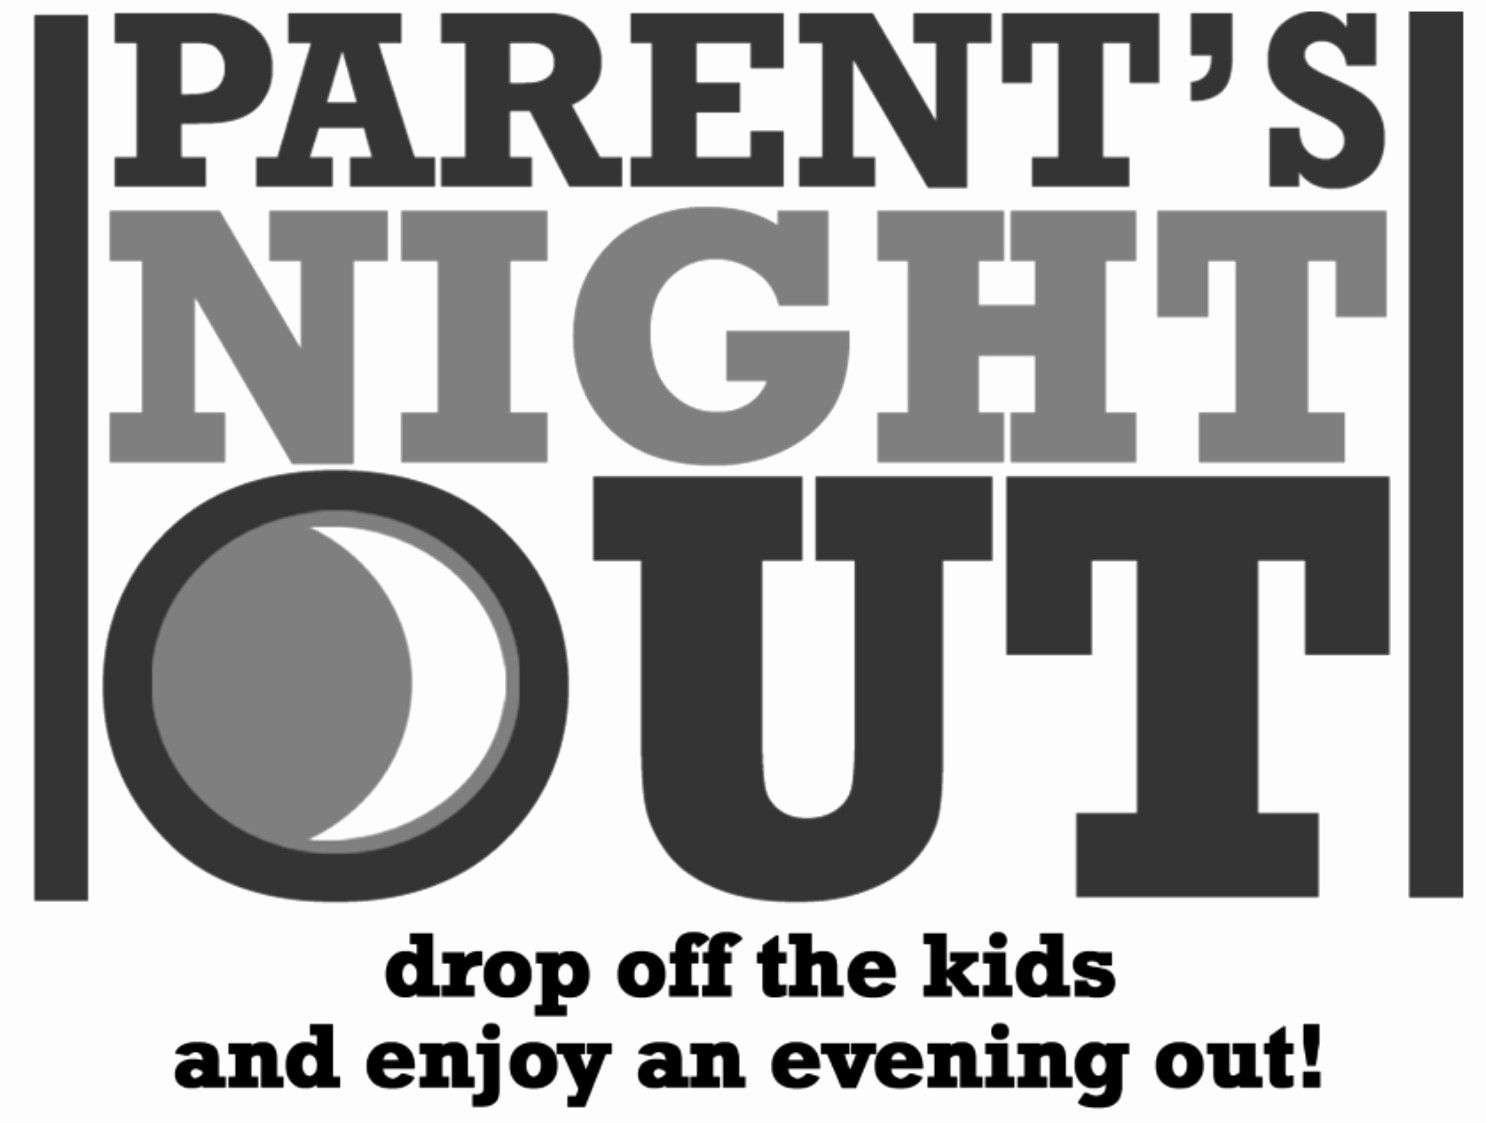 Parent Night Out Flyer Template Fresh Landing Place Church Parents Night Out Children S Ministry